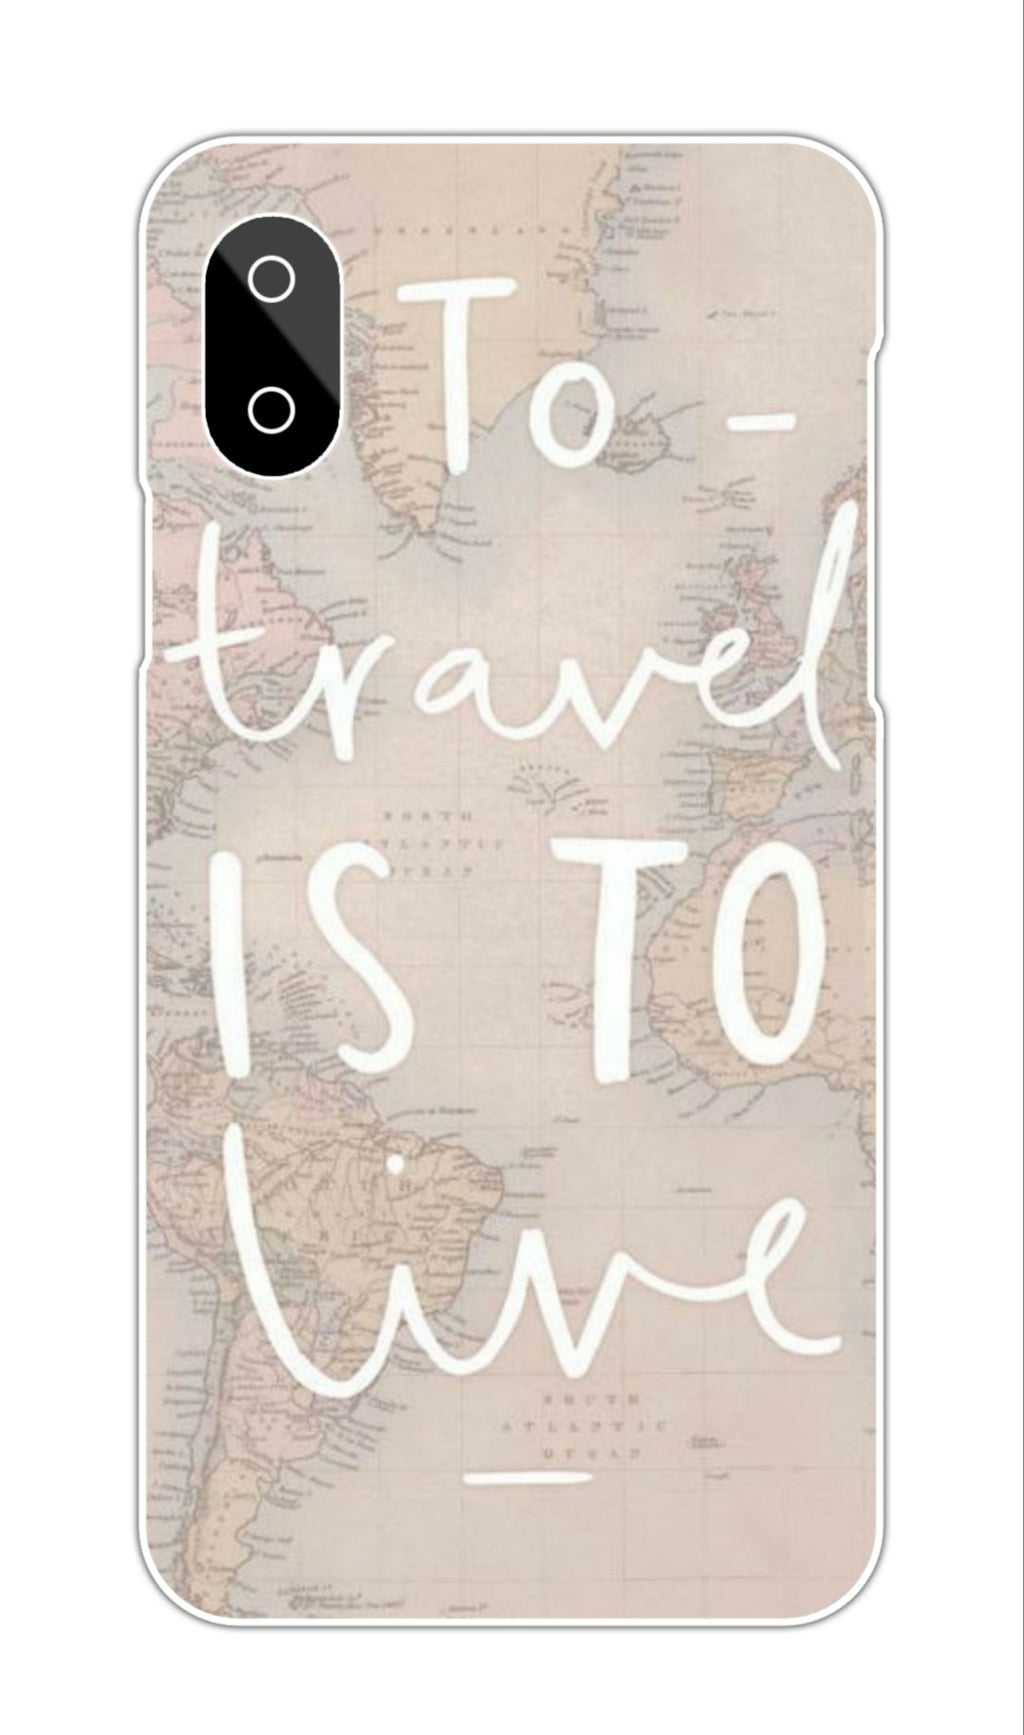 TO TRAVEL IS TO LEAVE QUOTE CASE